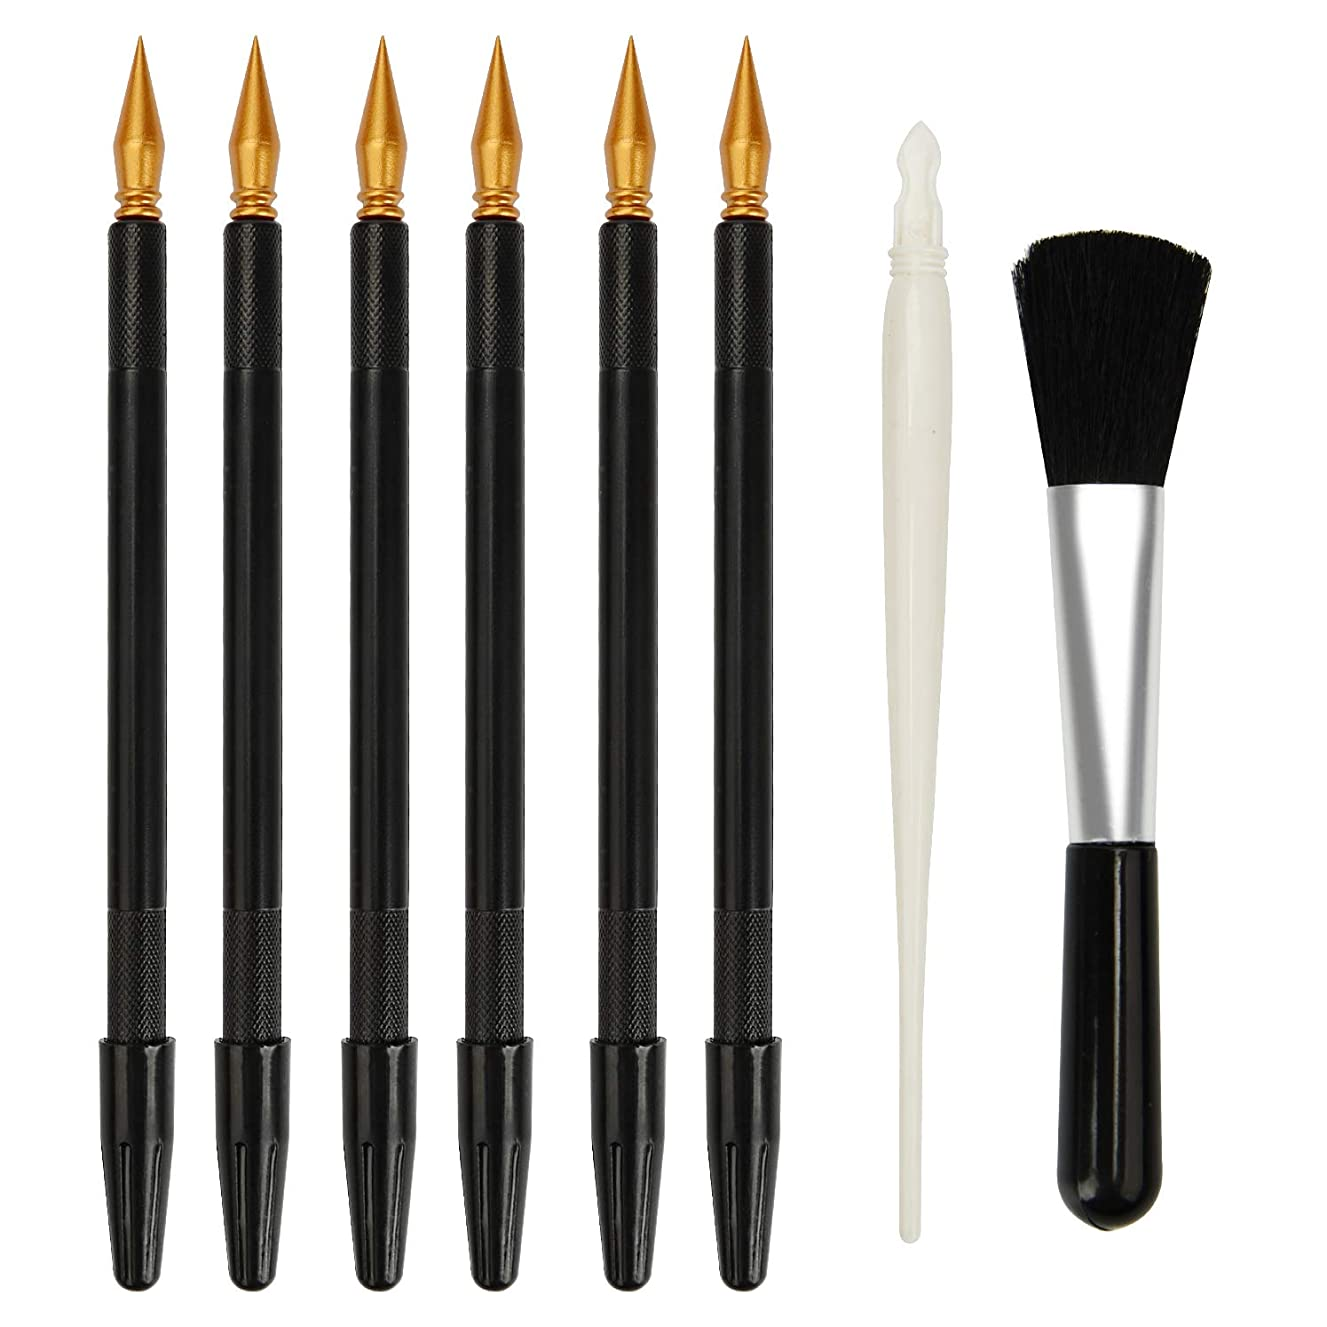 Scratch Color Pen, MOSSLIAN Scratch Art Design Tools, Dual Tip Stylus Scratch Paper Pens,Painting Drawing Arts Tools Set for Art Painting Papers Sheets Boards(6 Pcs Black+1 White+1 Brush) mfzpy5240